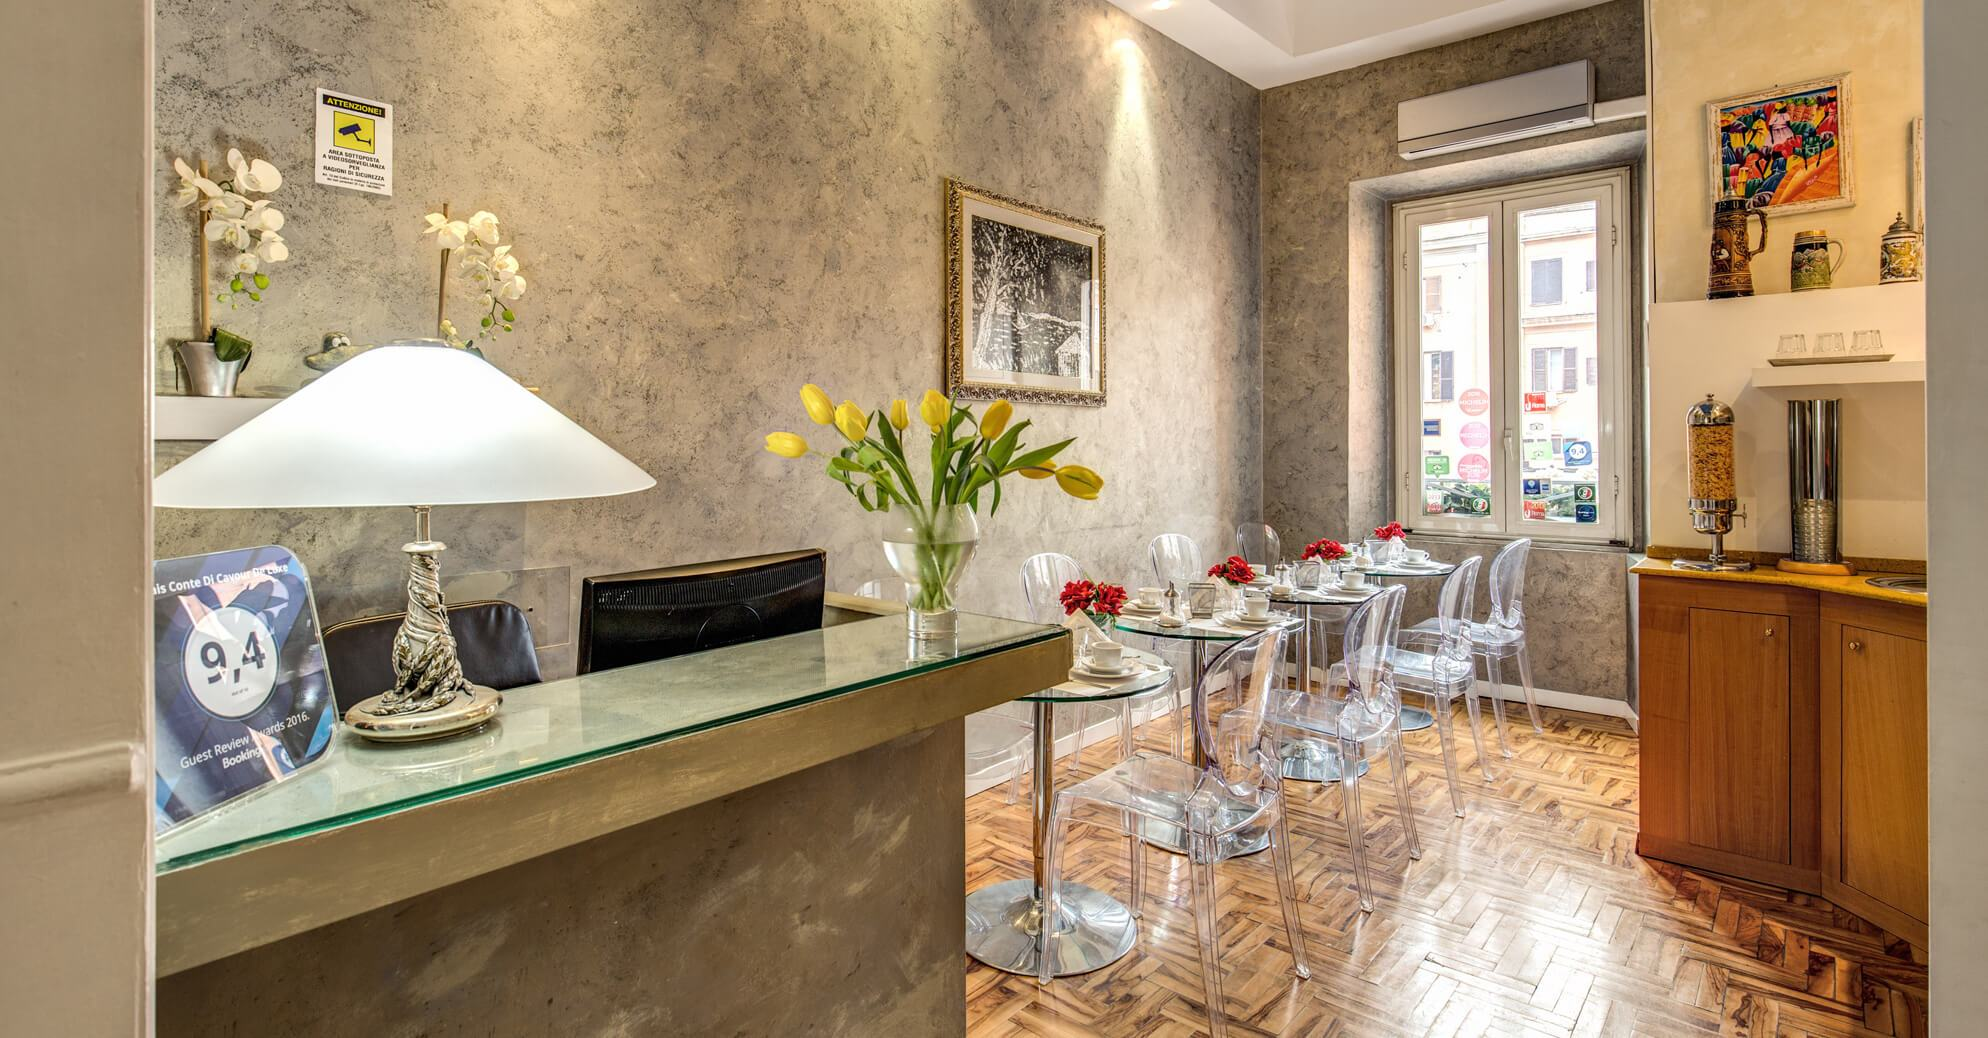 B&b Luxe Relais Conte Di Cavour Rome Official Website Stylish Budget